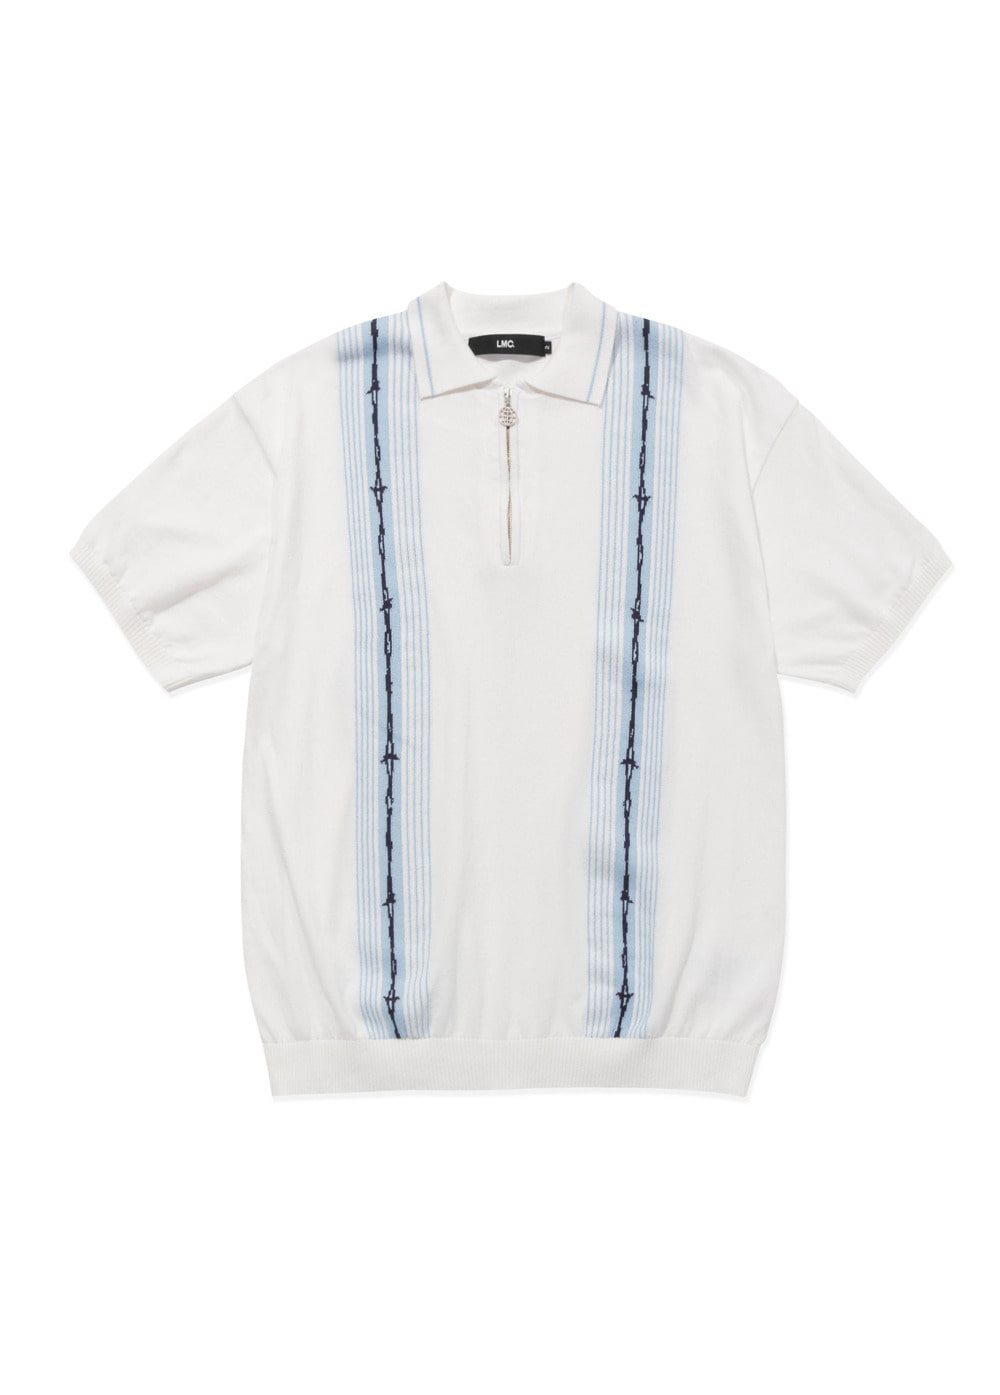 LMC BARBWIRE KNIT POLO SHIRT white